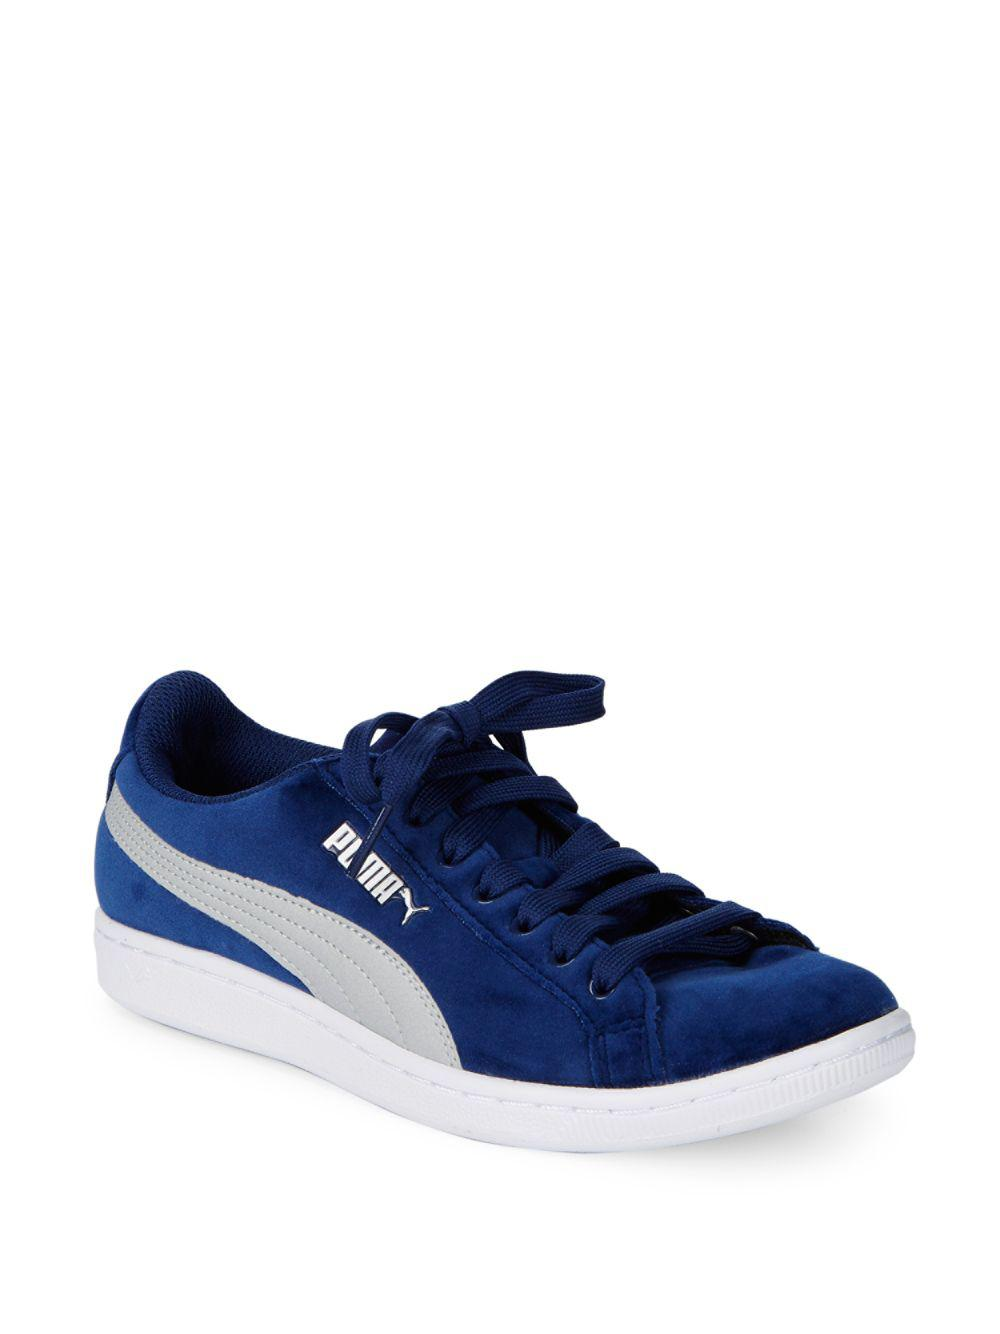 901d28876ba Lyst - Puma Vikky Sneakers in Blue for Men